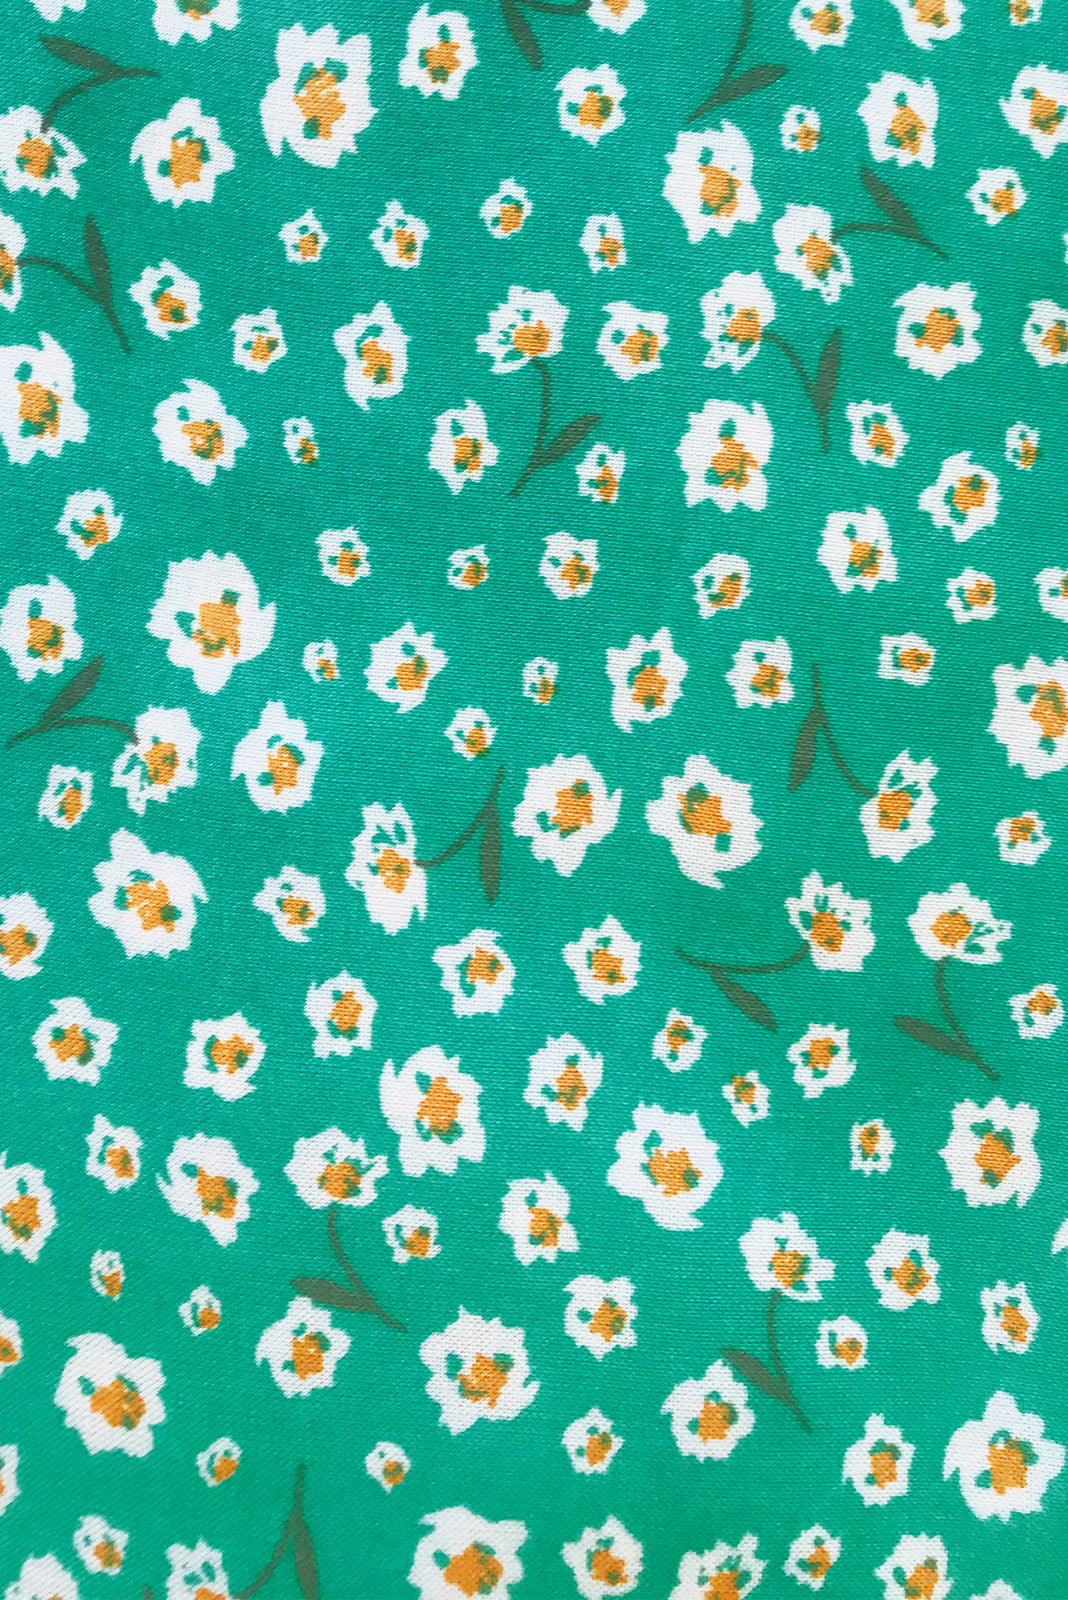 Fabric swatch ofTori Emerald Maxi Dress features emerald base with white ditzy floral print in woven 100% rayon.